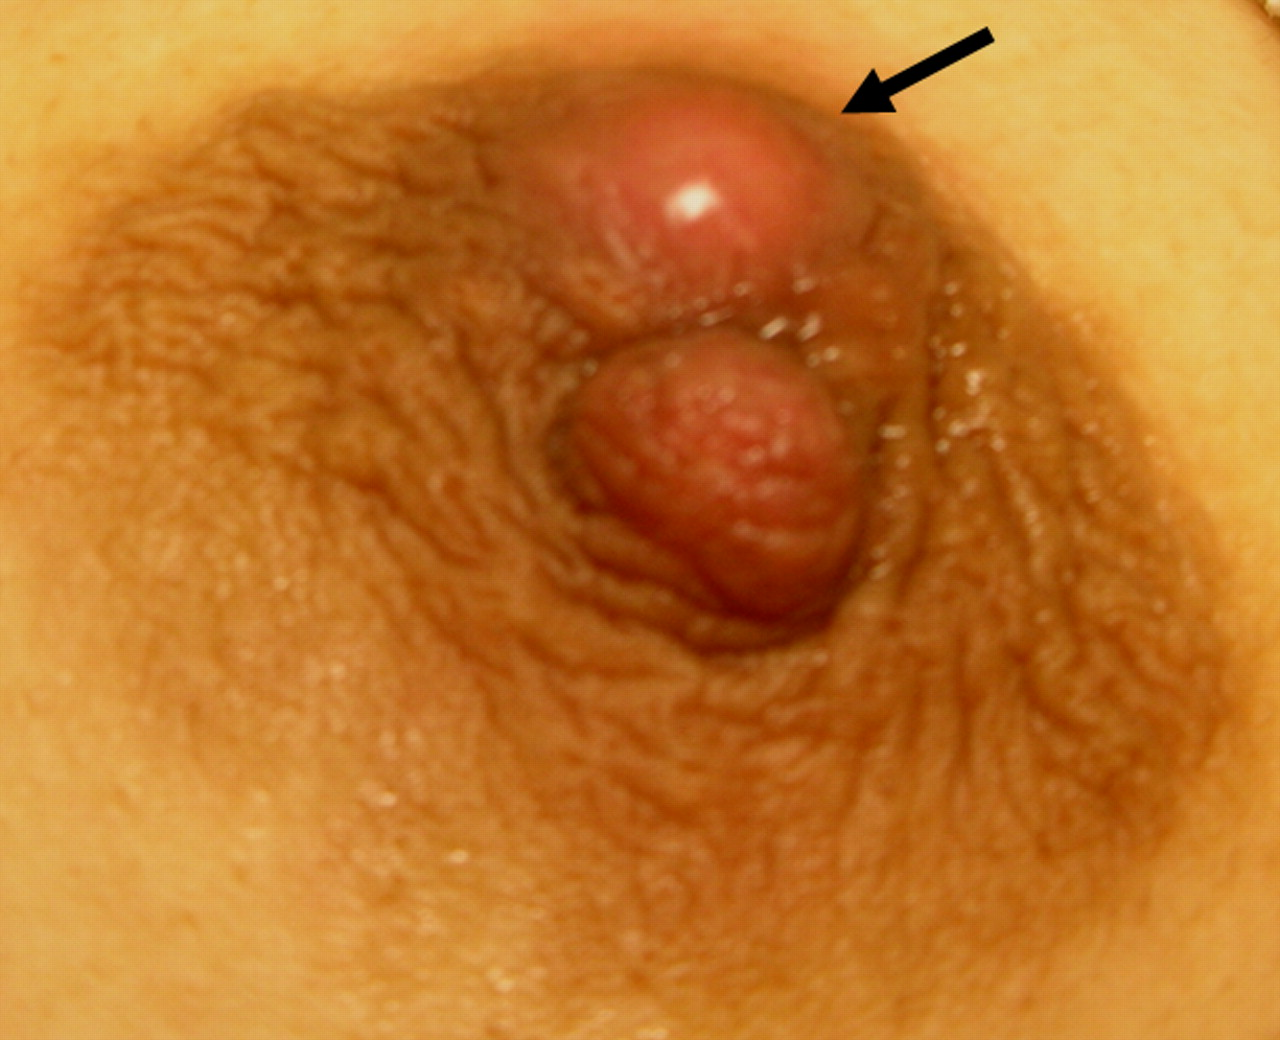 Breast abscess symptoms